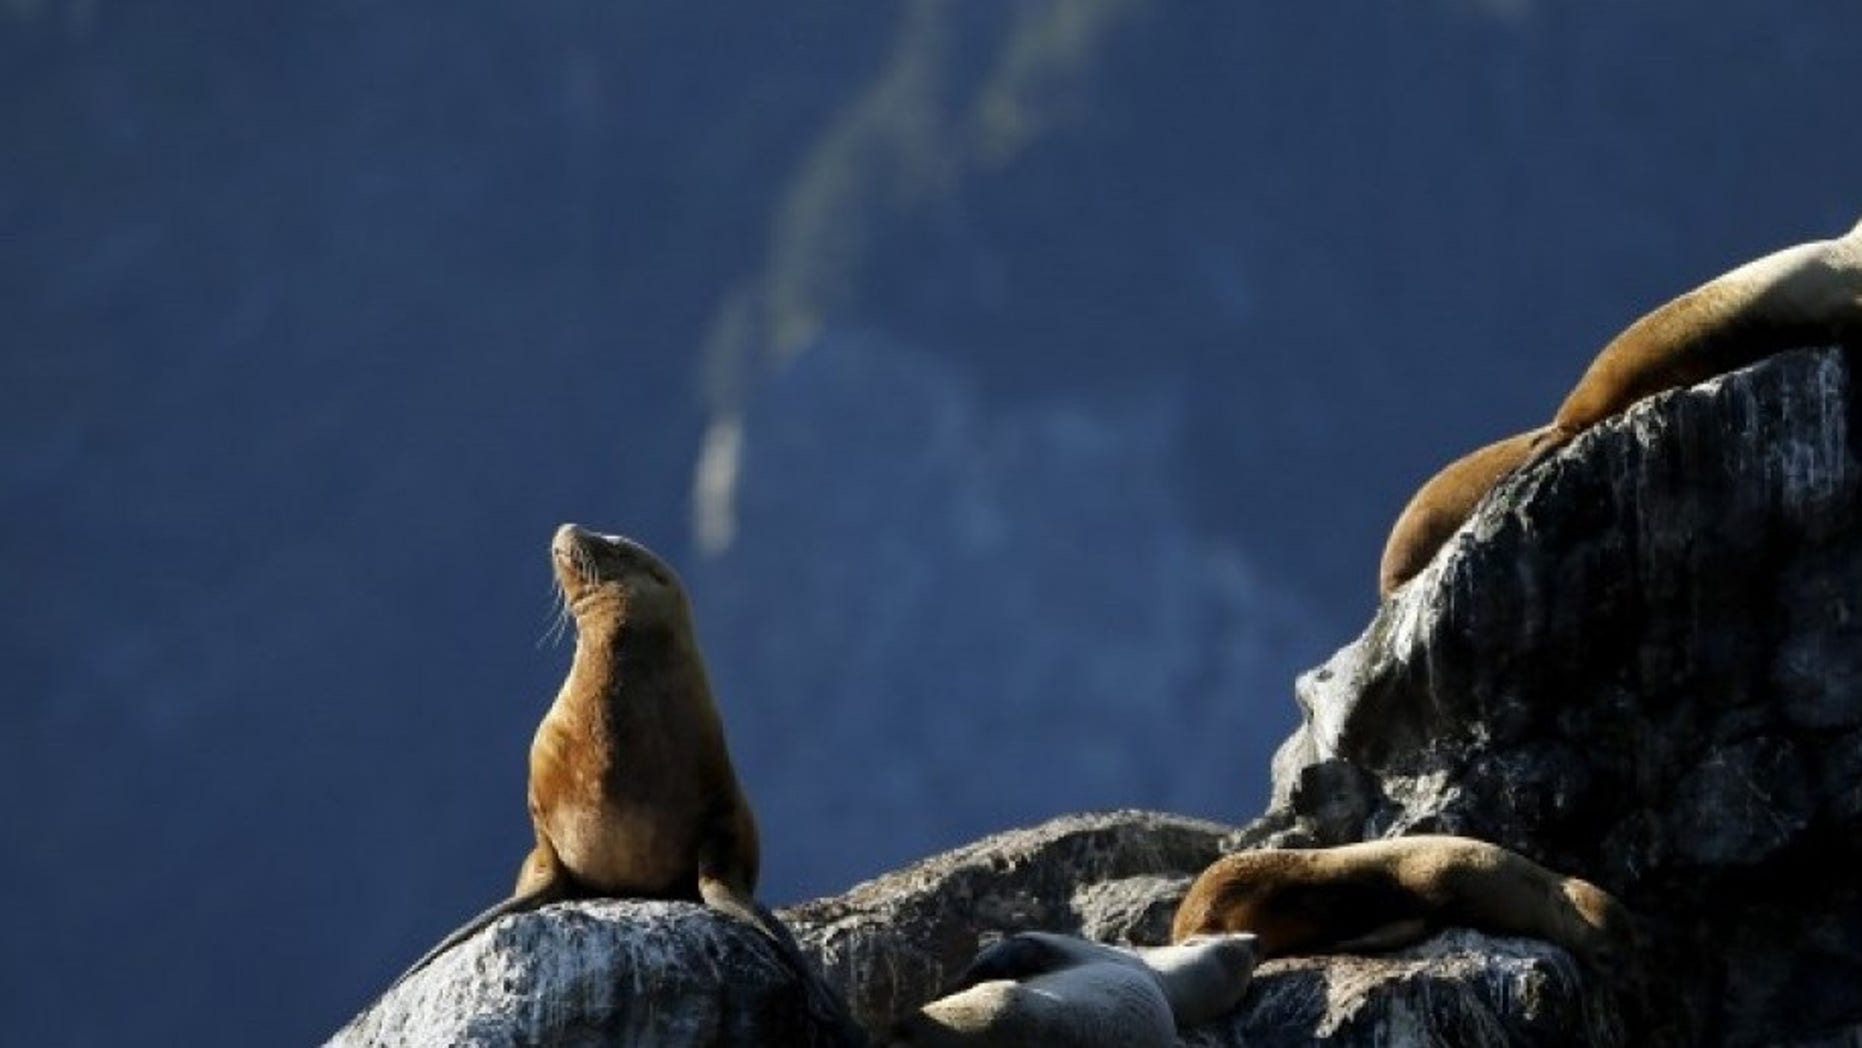 Sea lions bask on a rock as U.S. President Barack Obama (not pictured) takes a boat tour of Kenai Fjords National Park in Seward, Alaska September 1, 2015. REUTERS/Jonathan Ernst